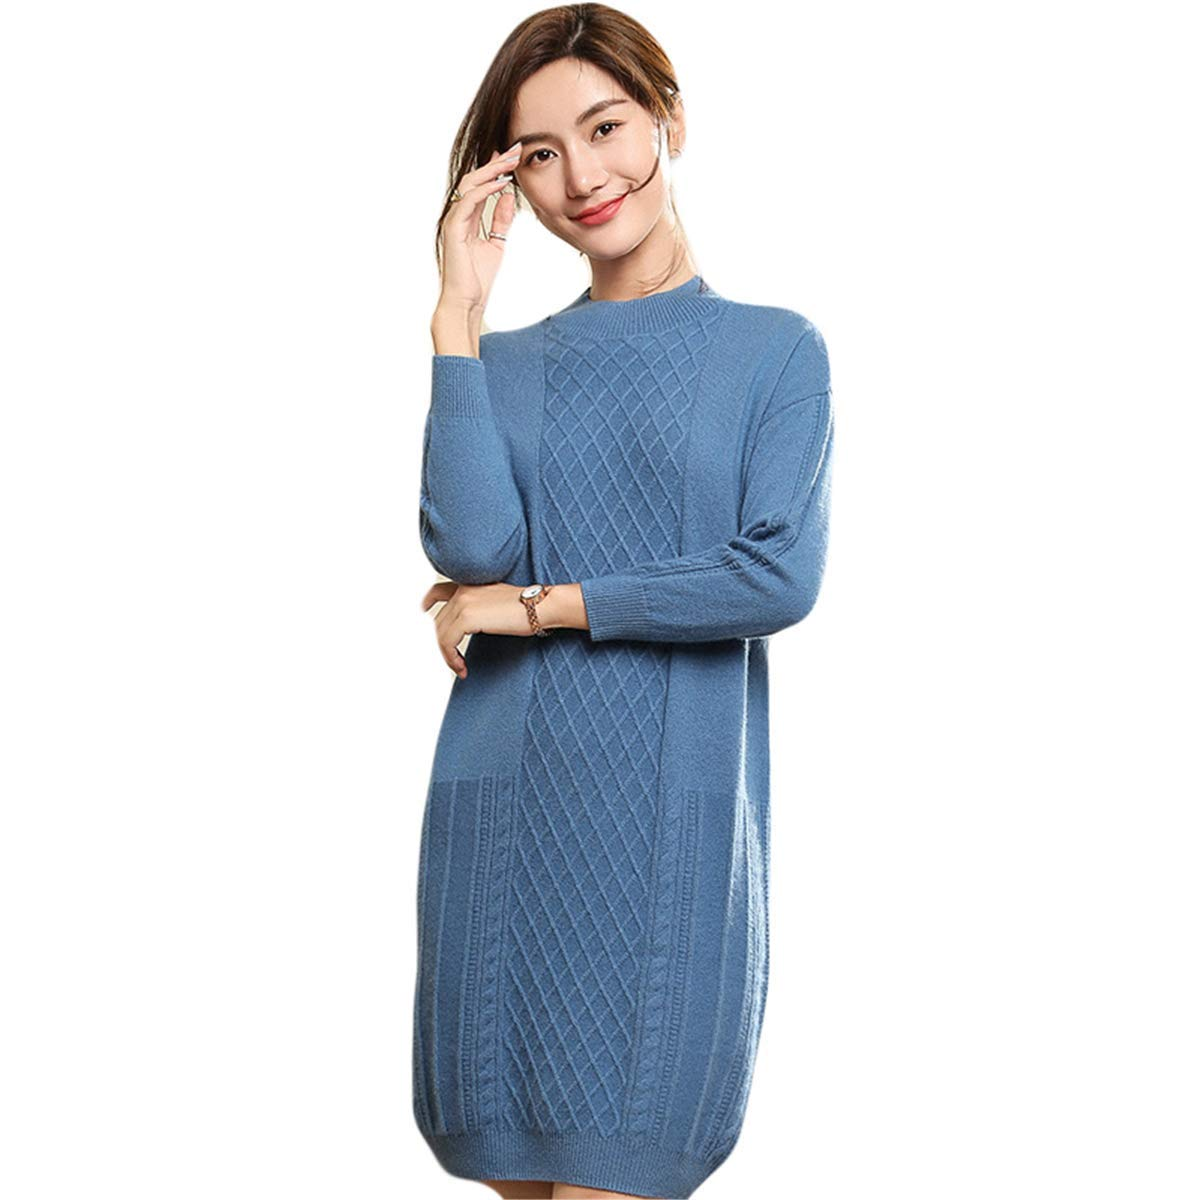 bluee MCieloLuna Women's 100% Cashmere Soft Knit Turtleneck Sweater Dress